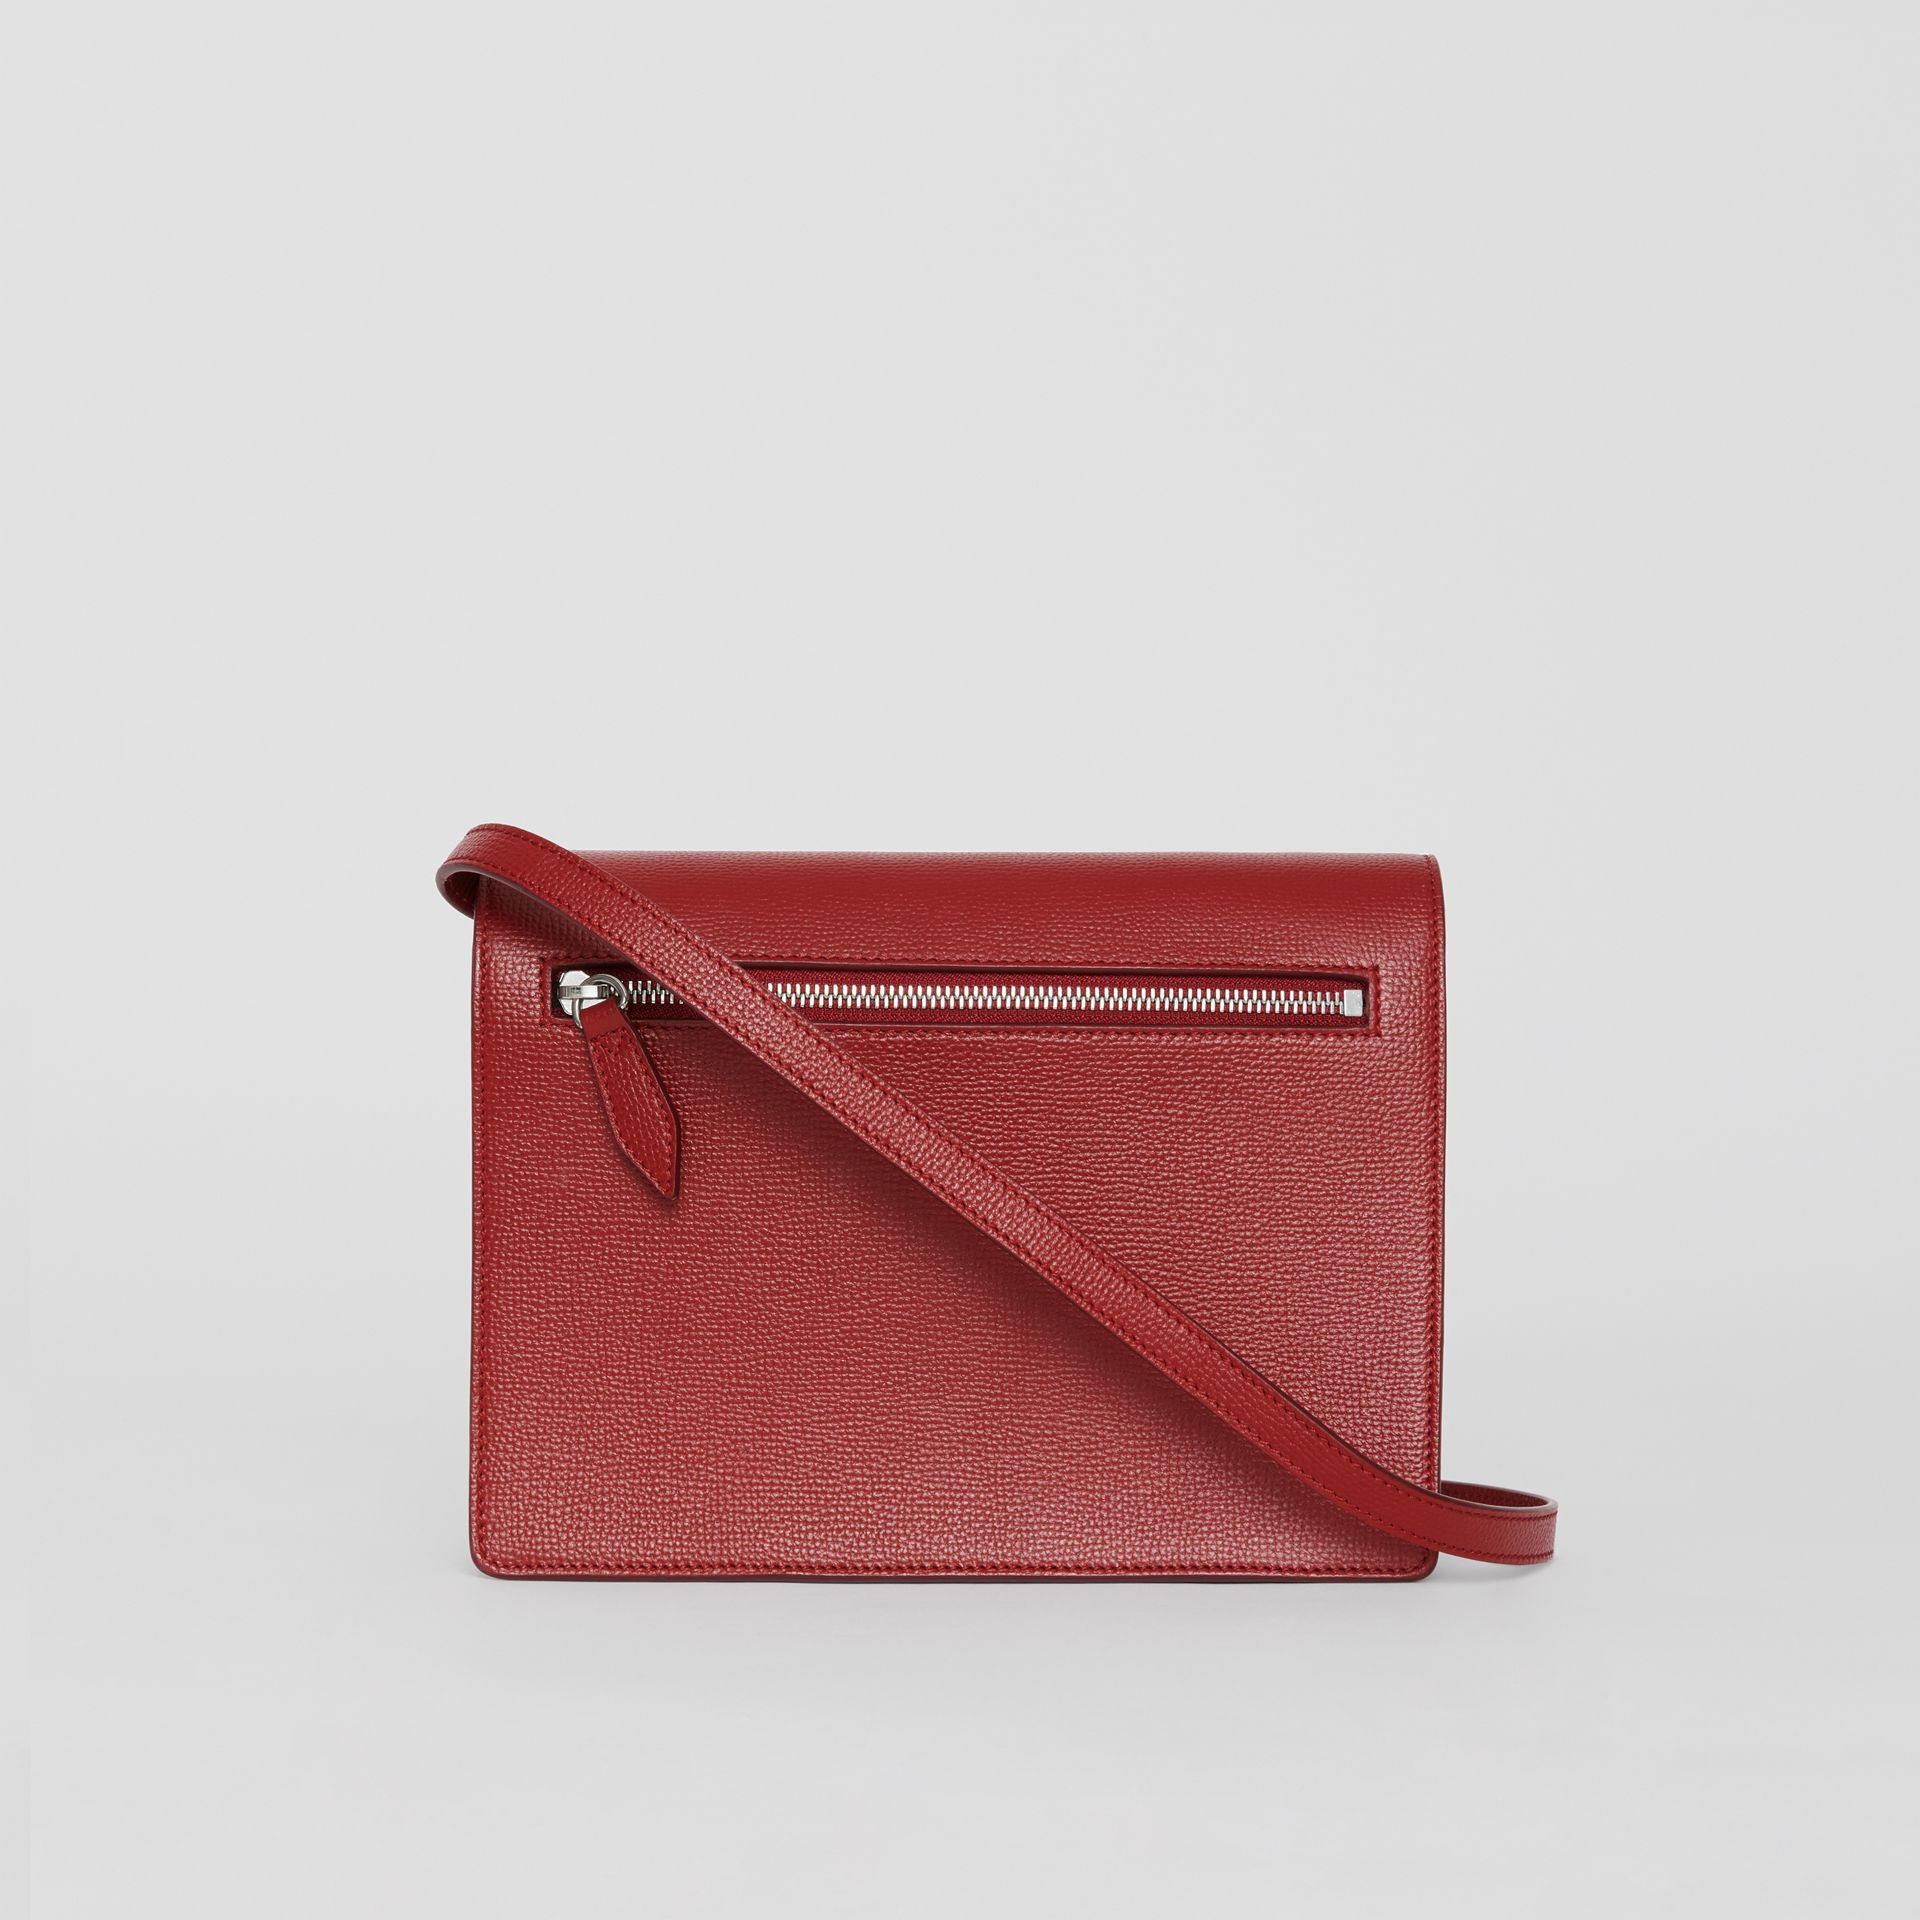 Small Vintage Check and Leather Crossbody Bag in Crimson - Women | Burberry United States - gallery image 5